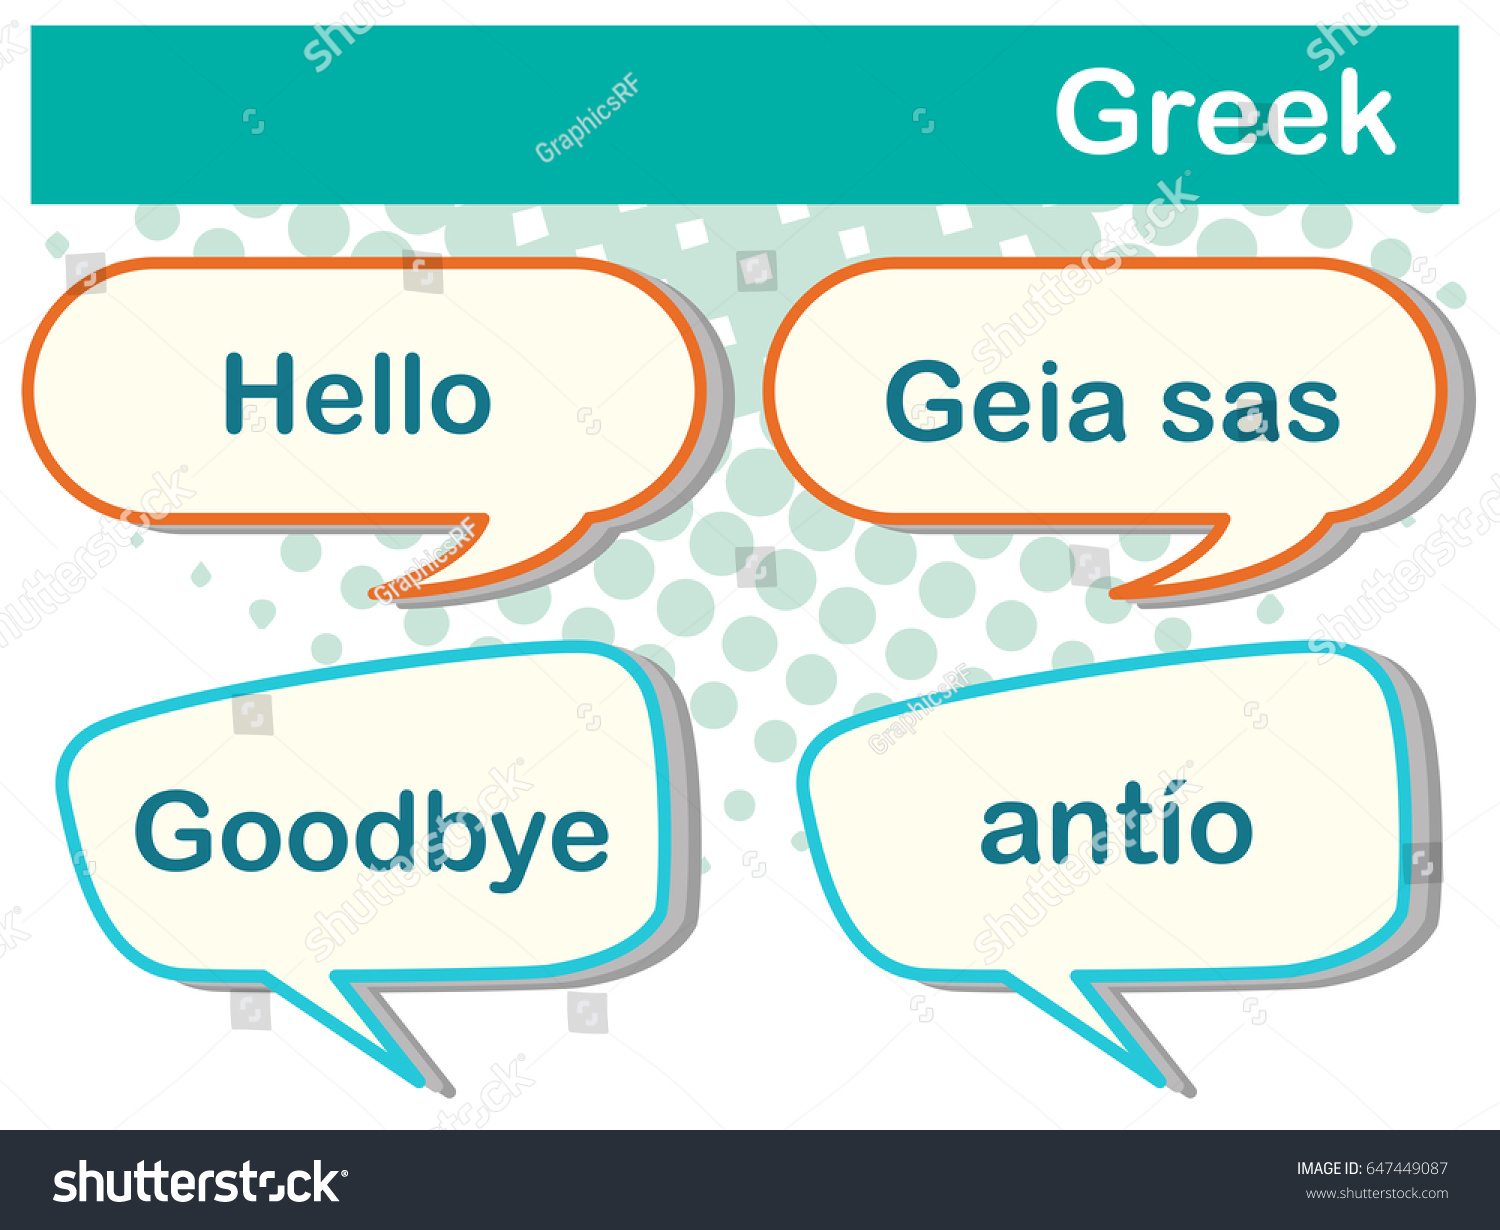 Greeting words greek illustration stock vector 647449087 shutterstock greeting words in greek illustration m4hsunfo Choice Image